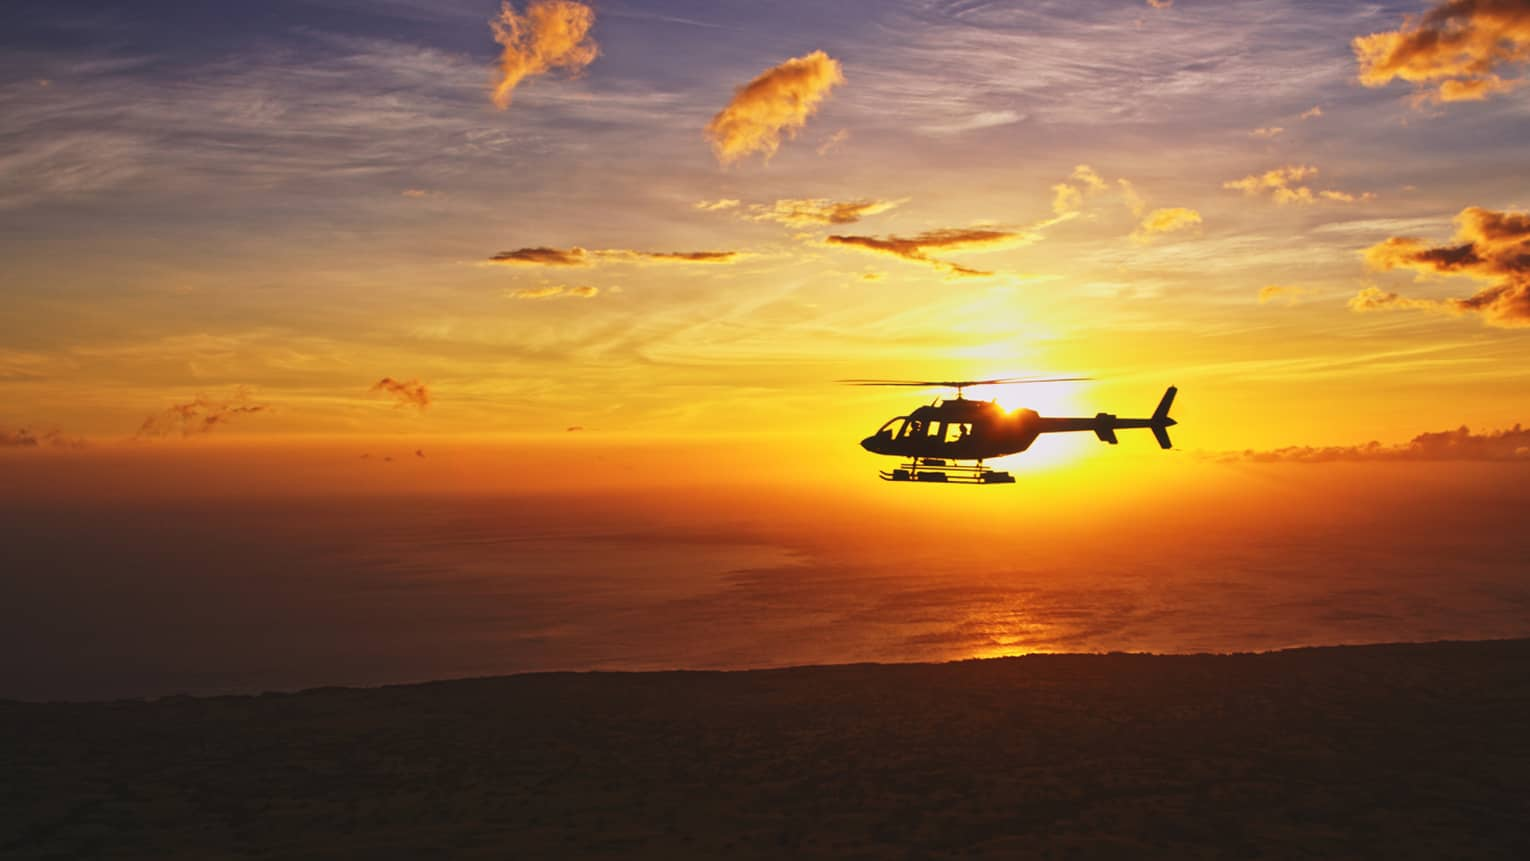 Silhouette of helicopter against orange sunset